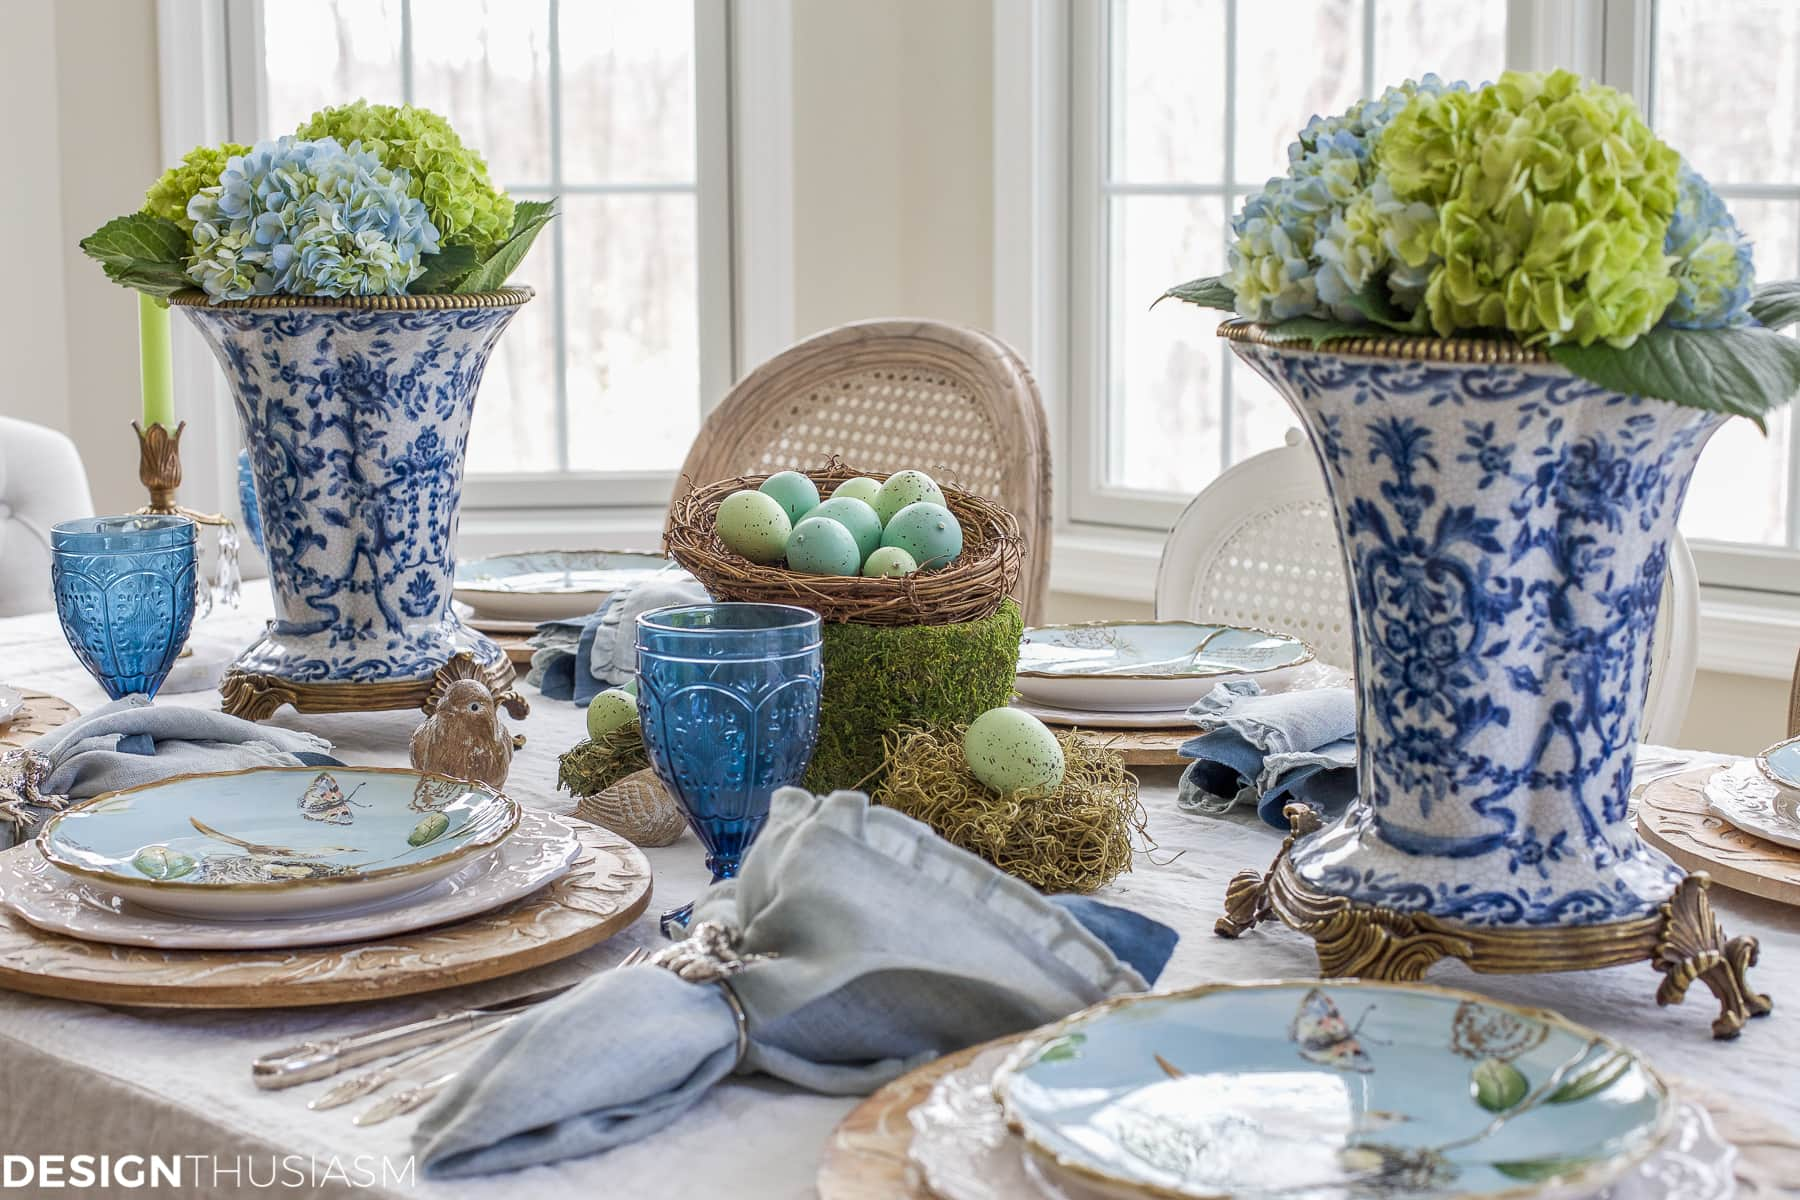 one of the easter table setting ideas with centerpieces